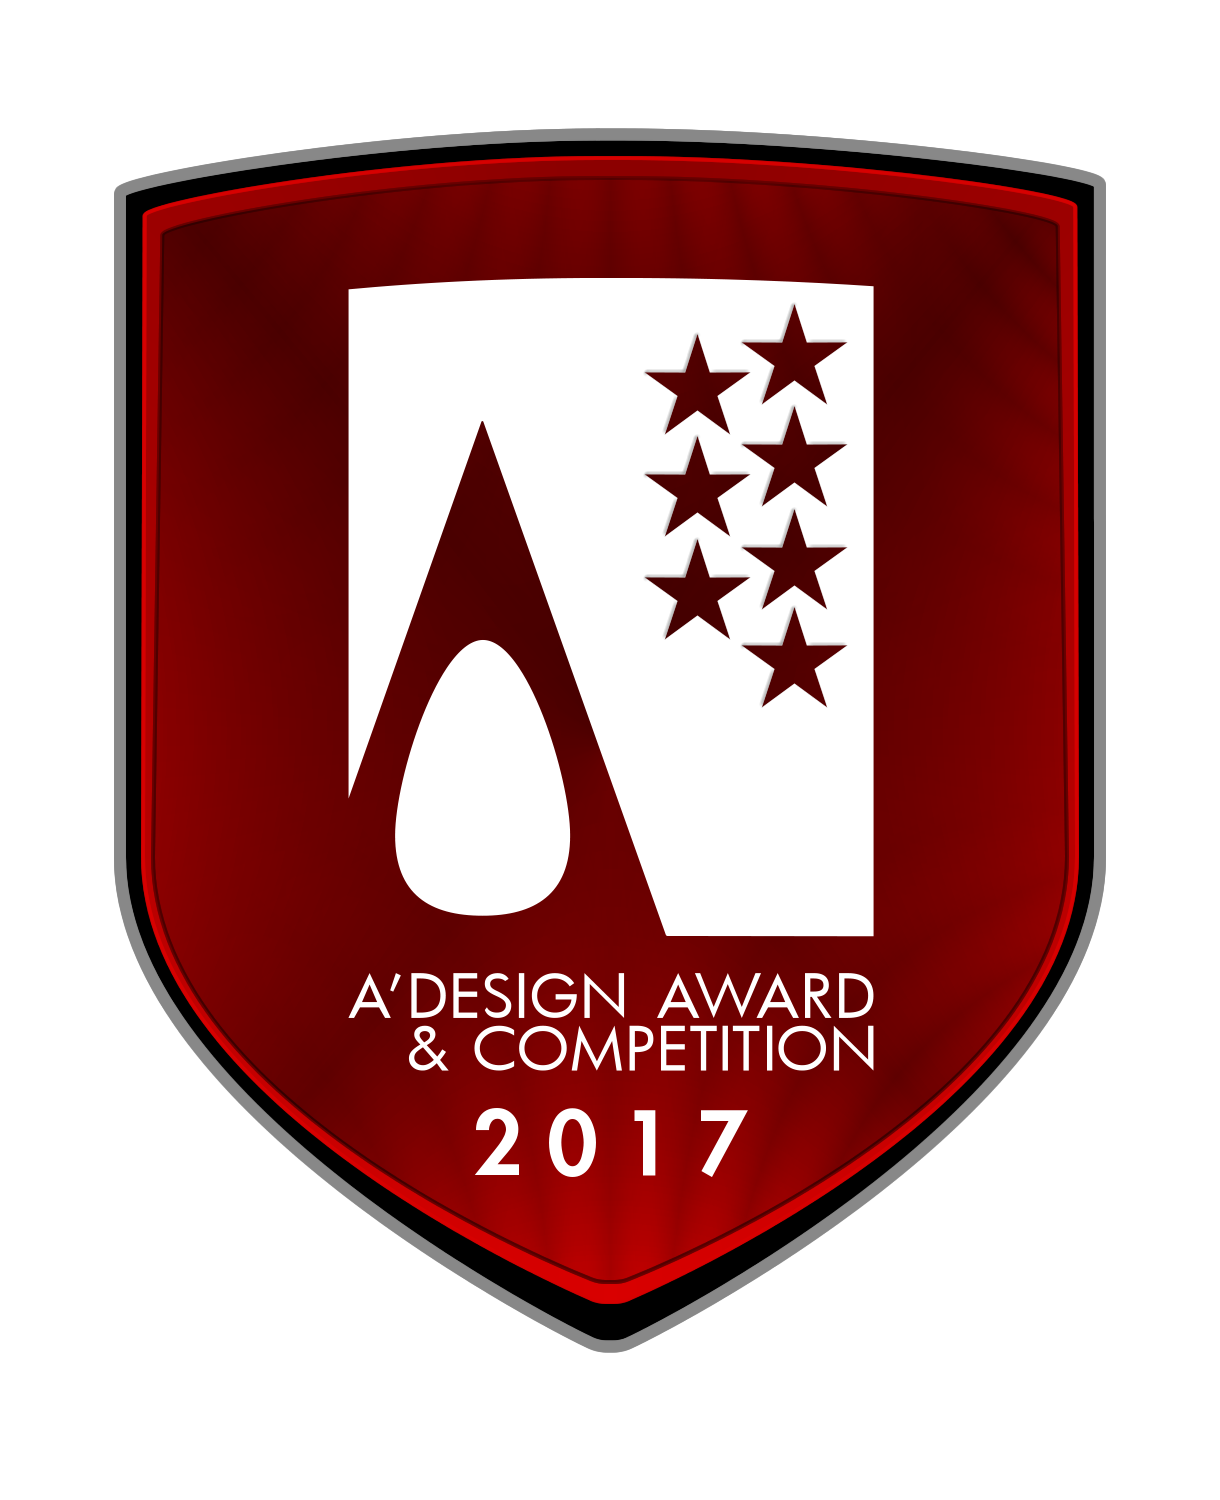 A'Design Awards chose Kivo Tabletop as one of the best designs for 2017